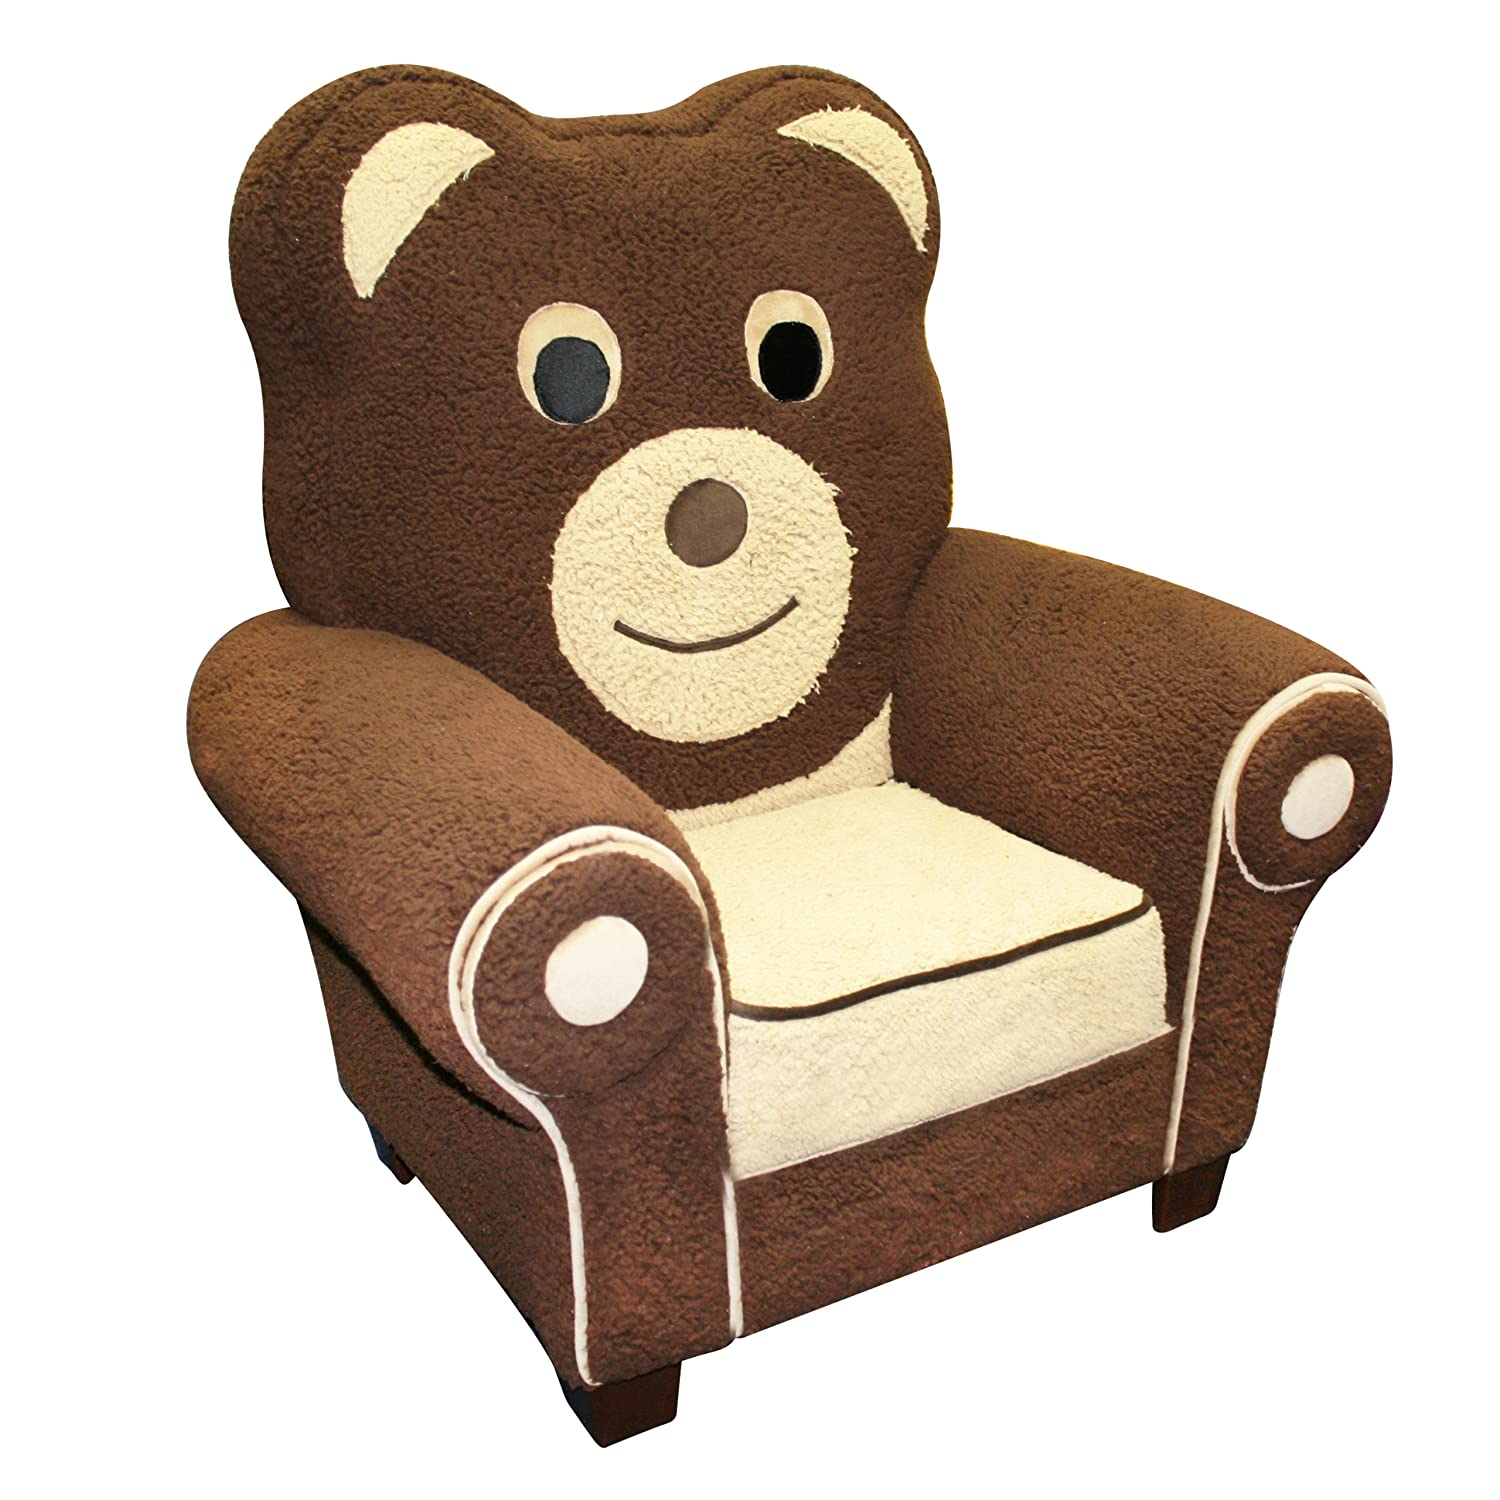 bear bean bag chair game chairs for sale teddy furniture totally kids bedrooms